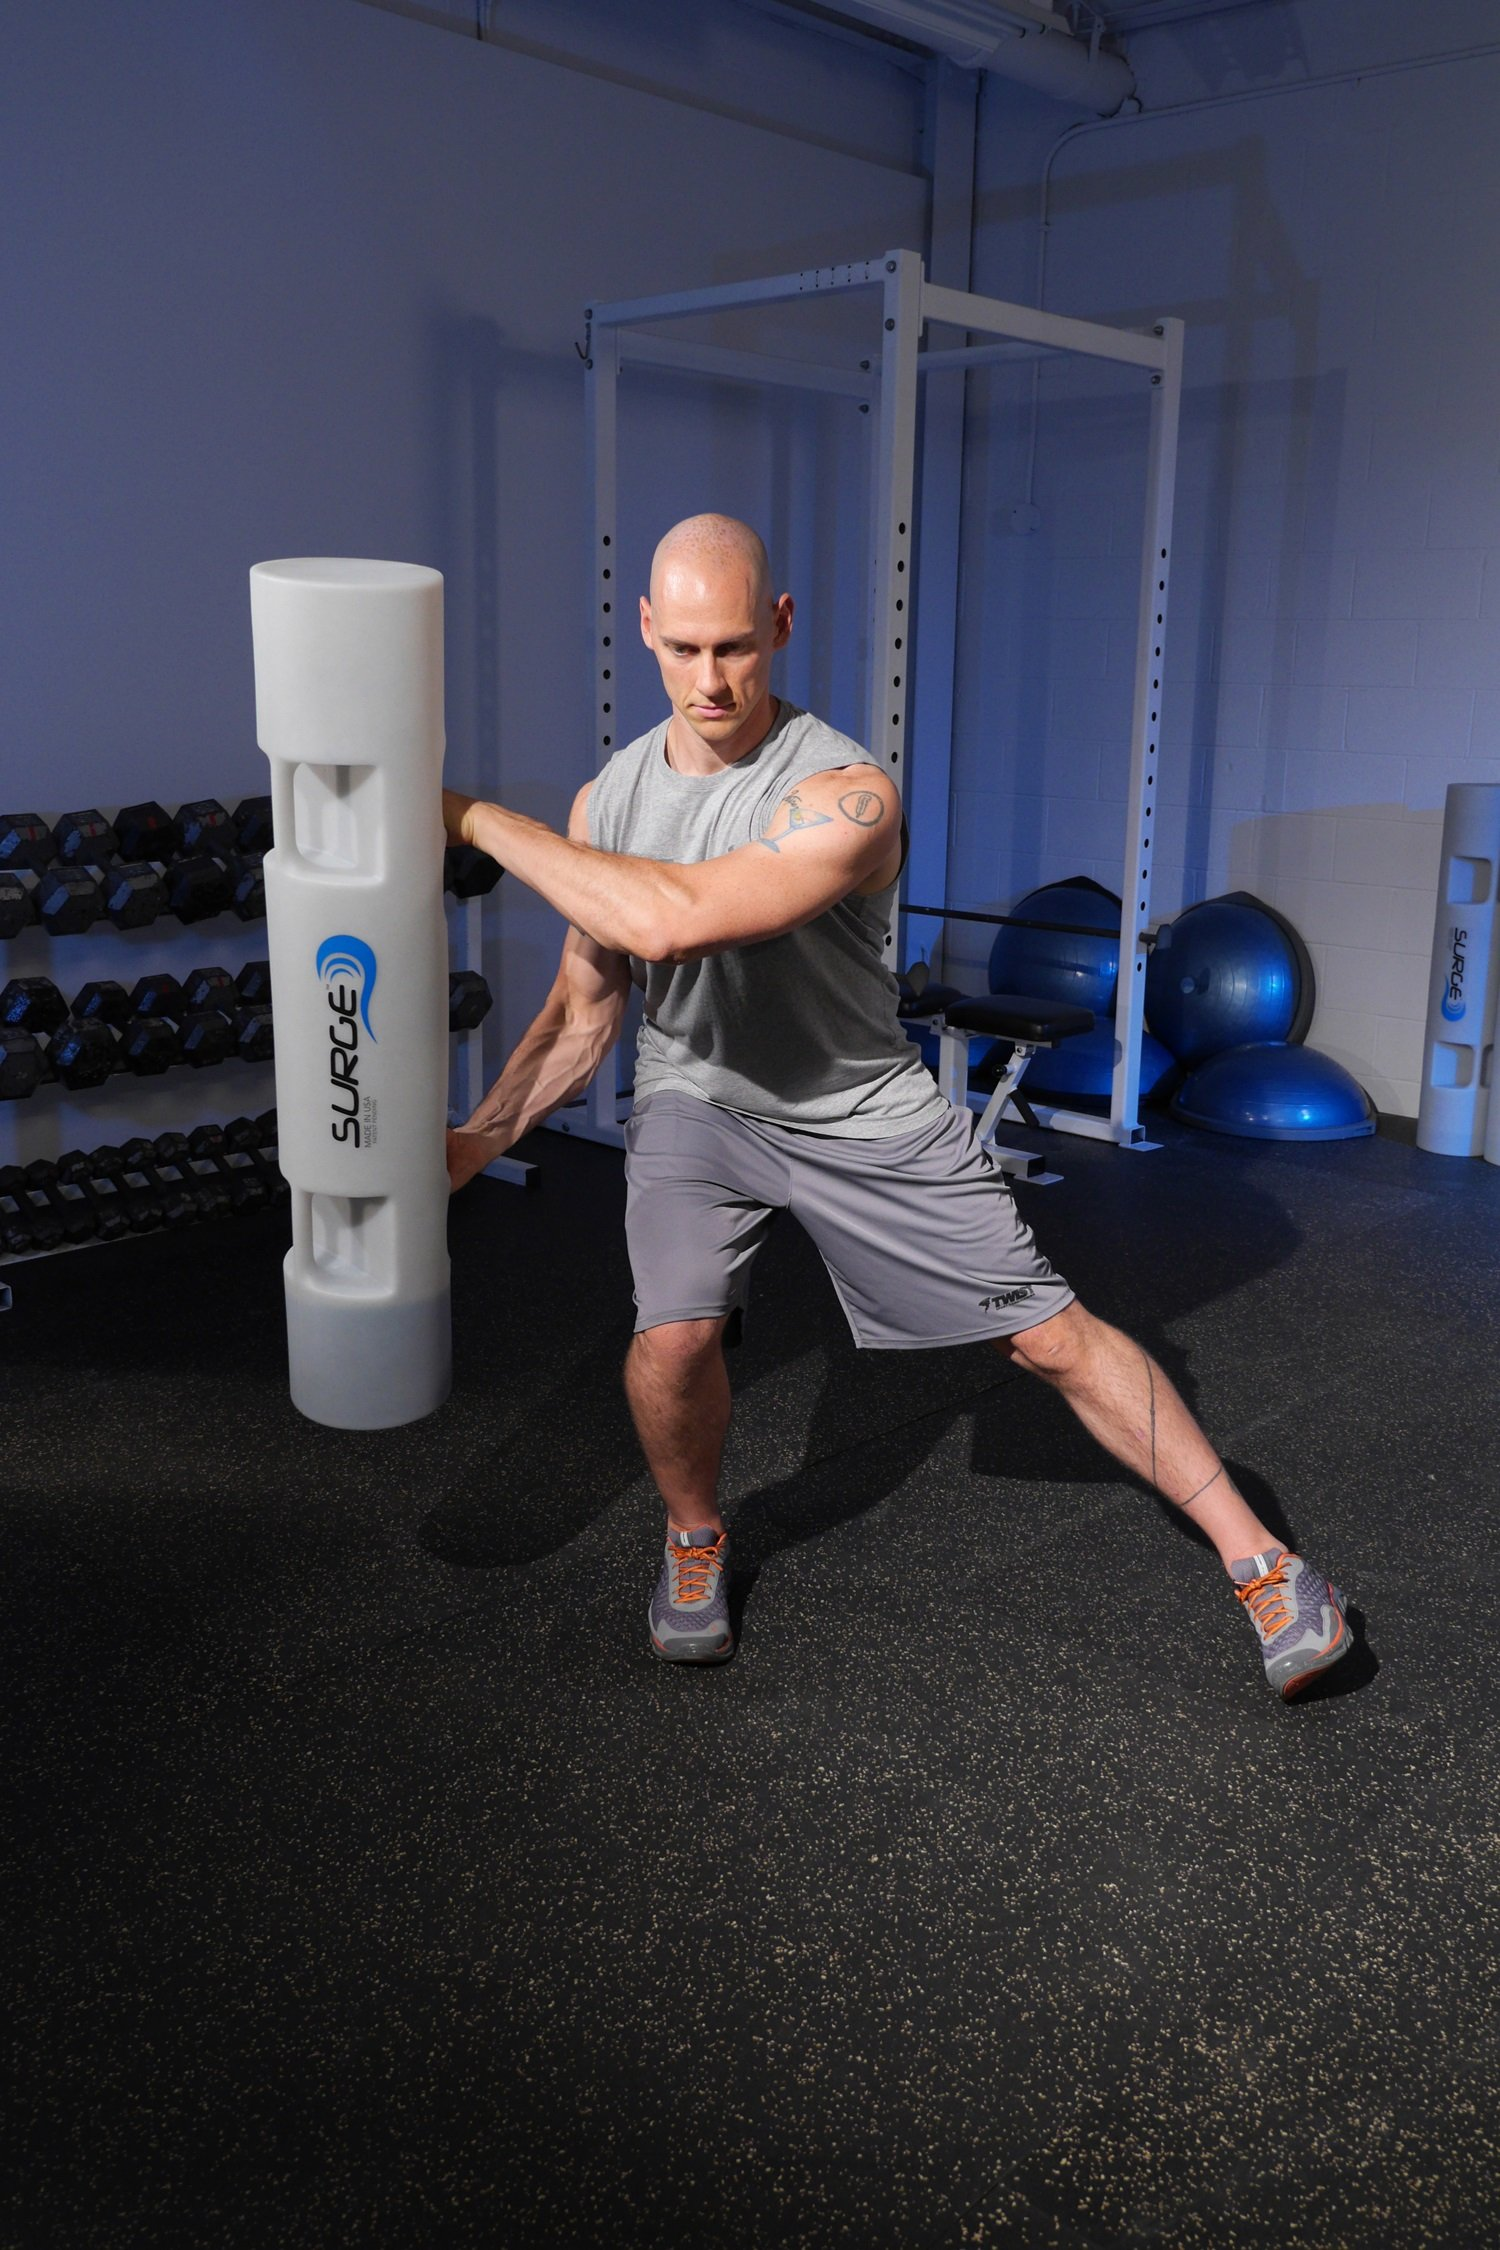 Surge Fitness Trainer with Workout by Surge (Image #2)